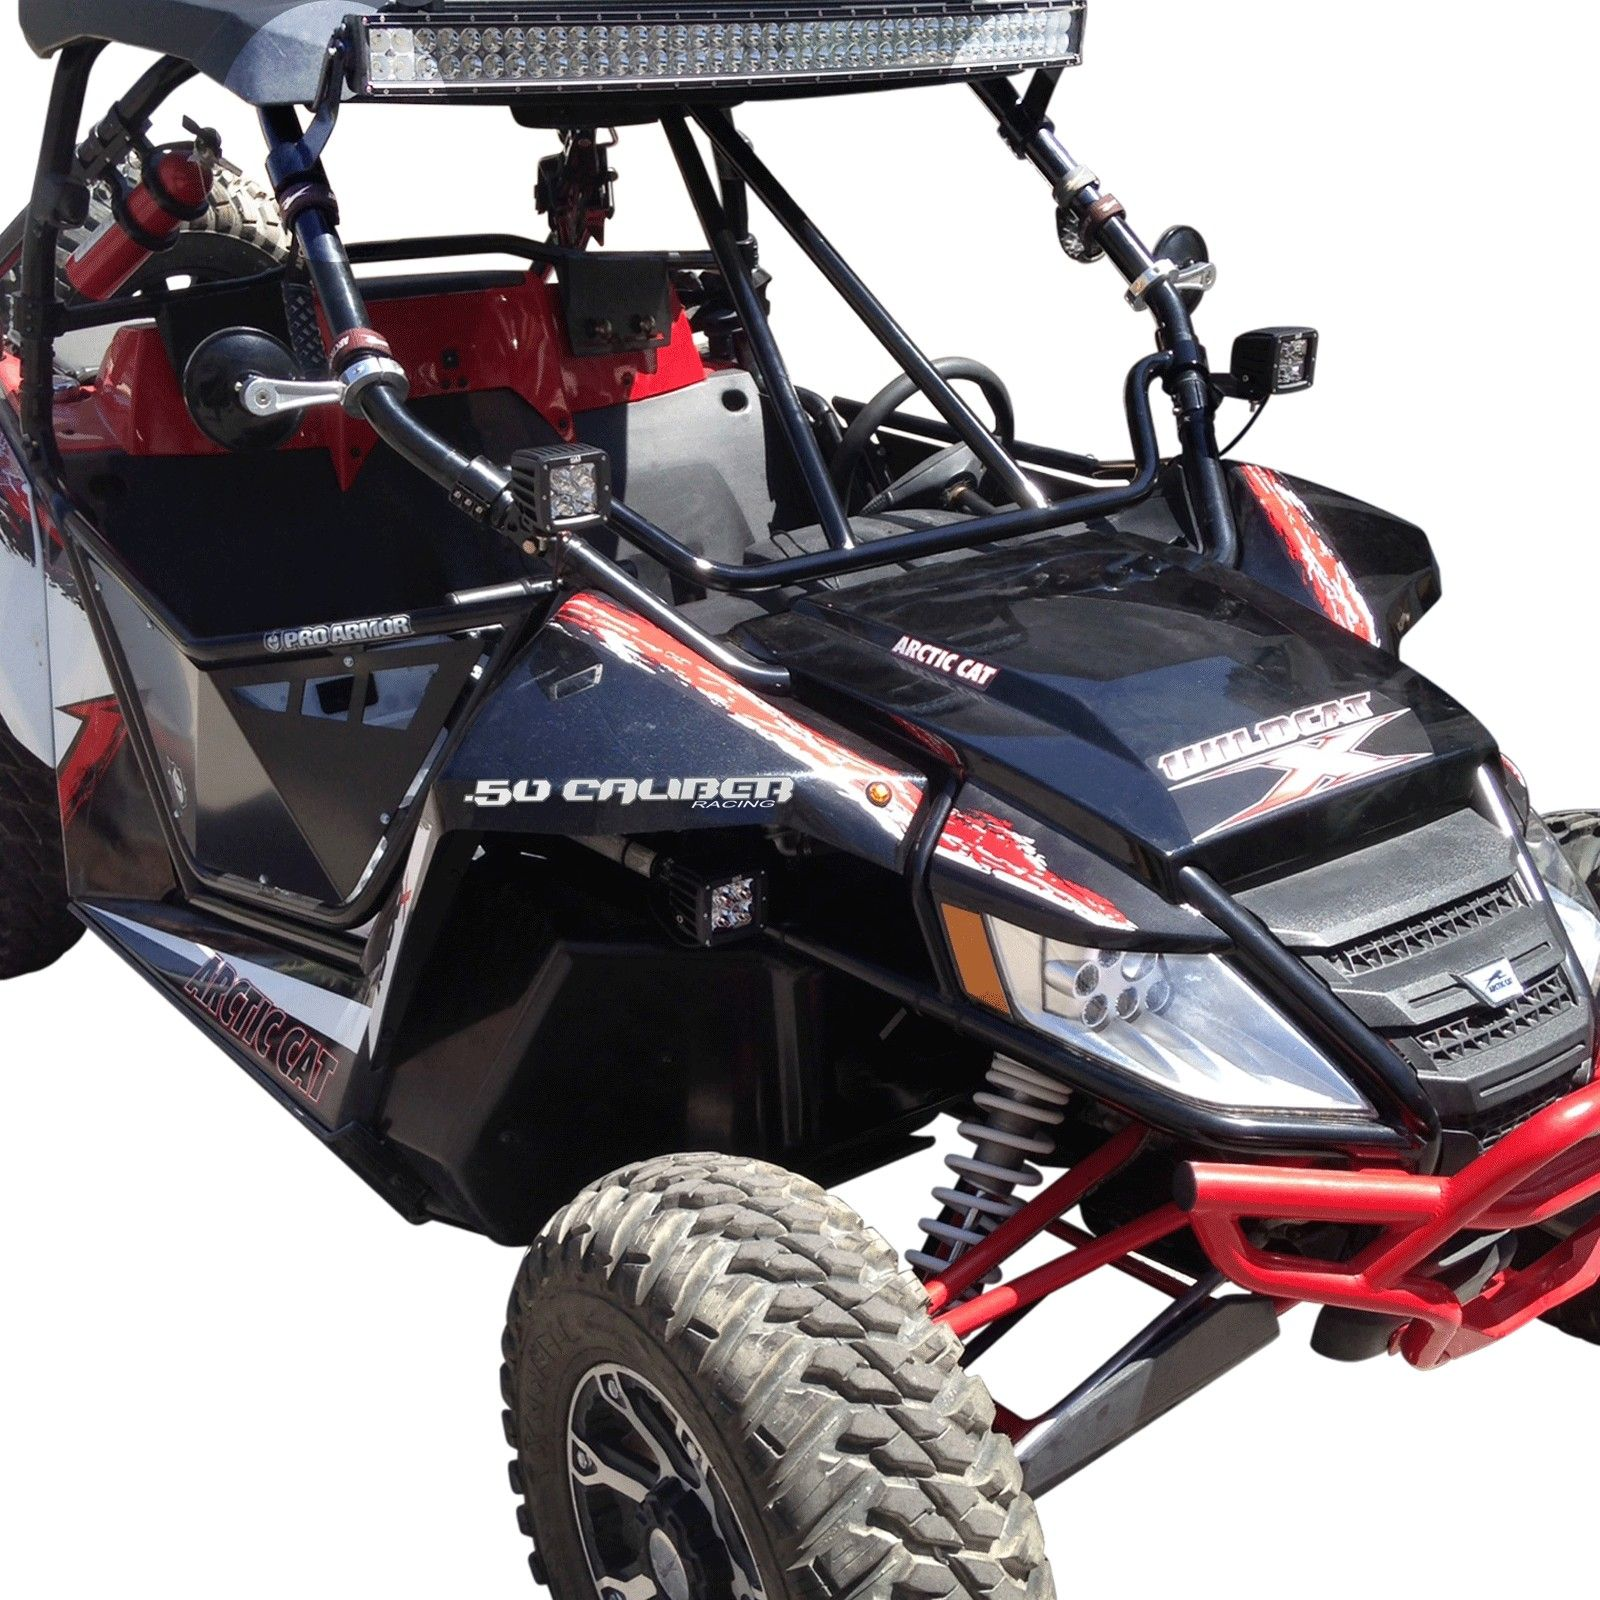 50 caliber racing clamp on dash intrusion v bar for factory arctic cat wildcat roll cage. Black Bedroom Furniture Sets. Home Design Ideas